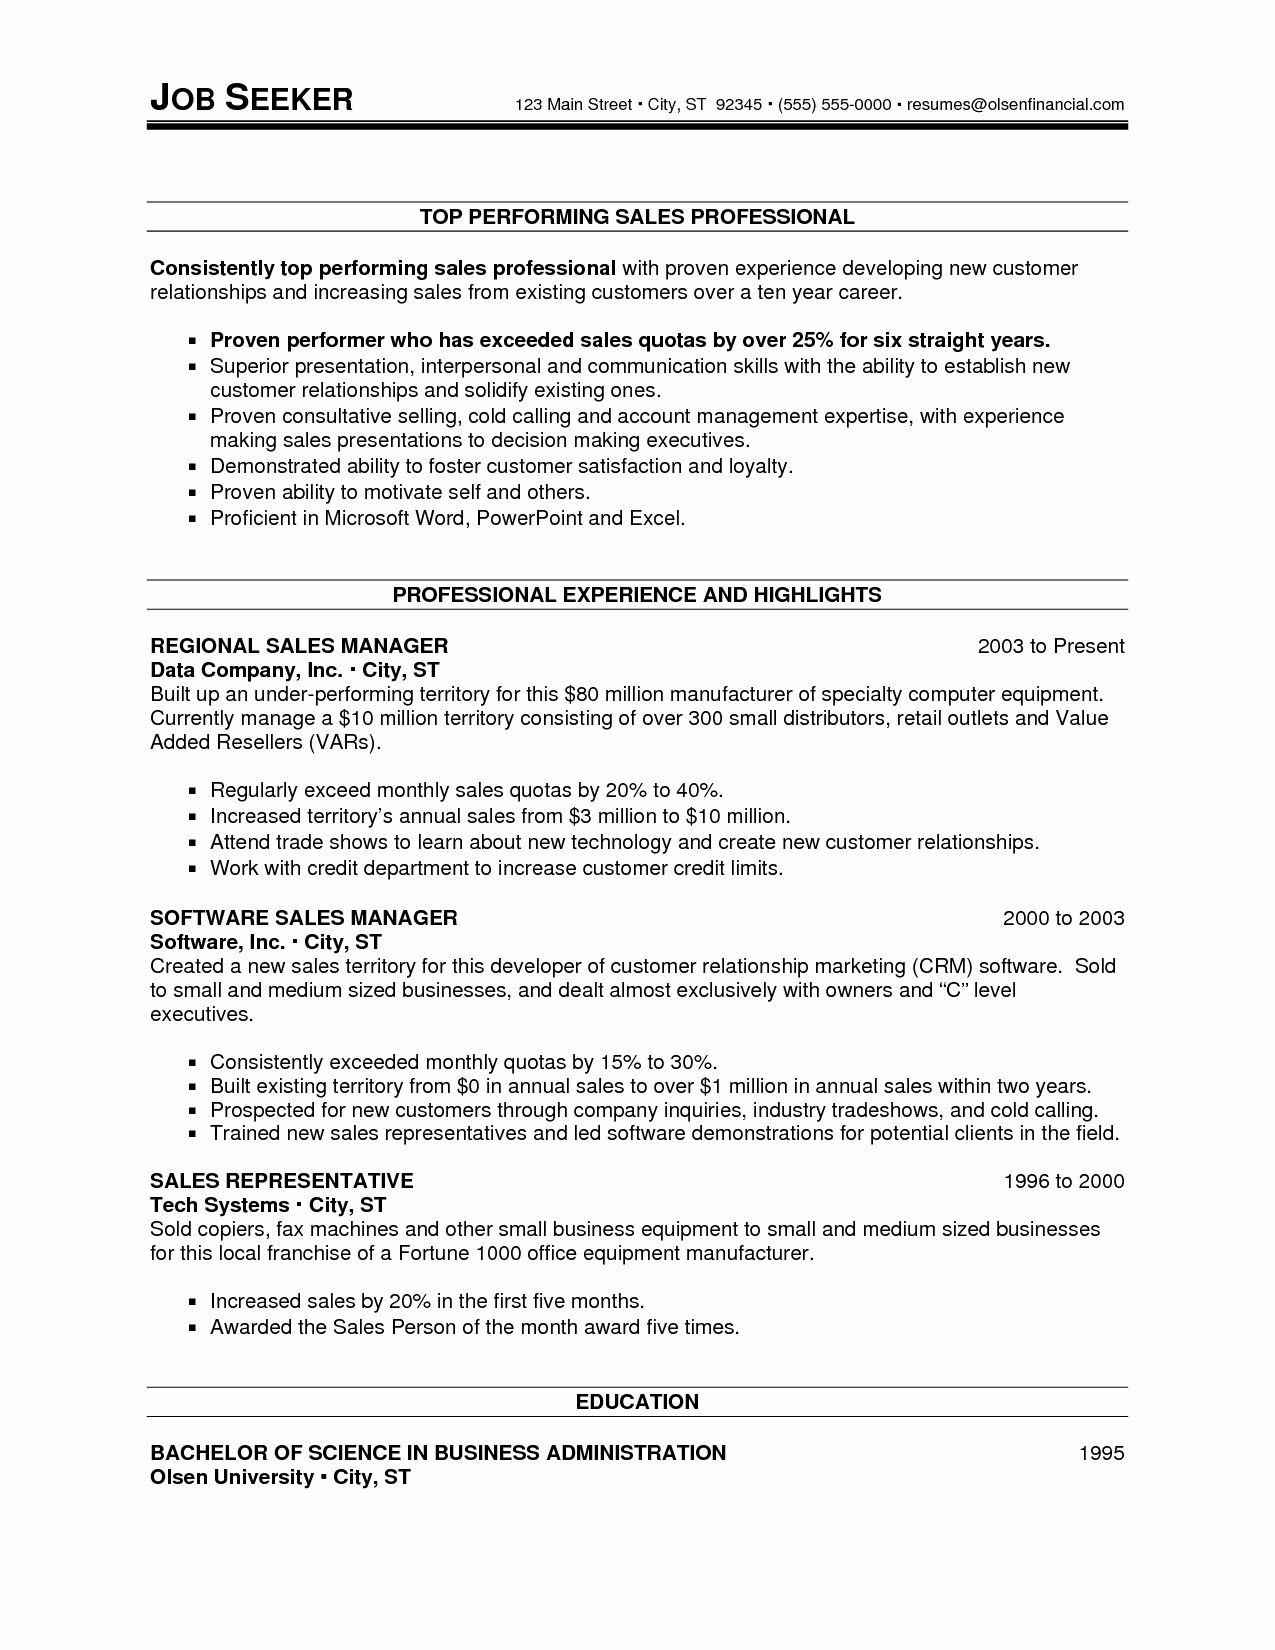 Sales Resume Template Microsoft Word Unique Sales Resume Template Microsoft Word Bongdaao